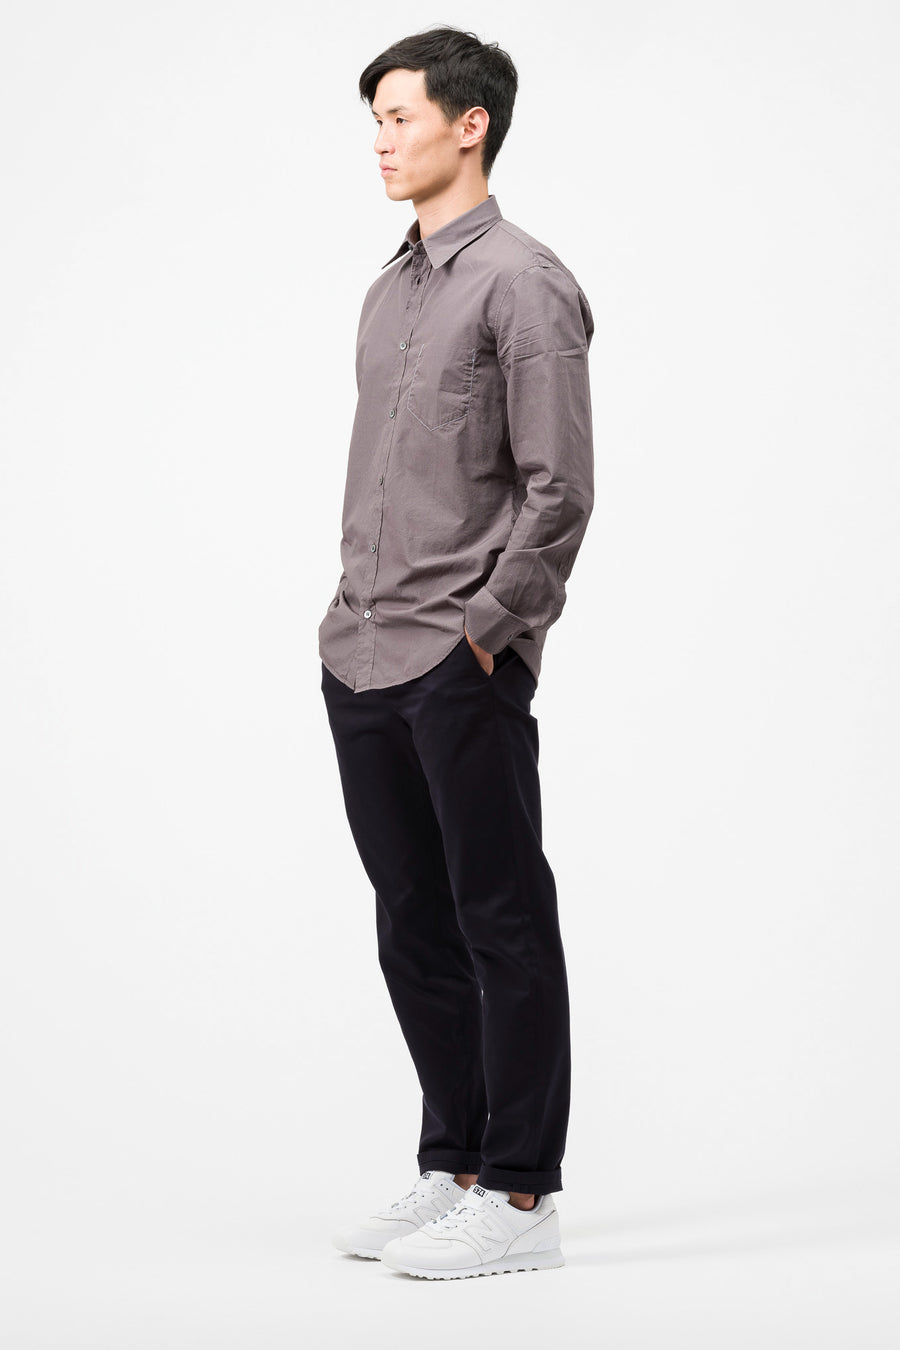 Maison Margiela Button Up Shirt in Dark Grey - Notre